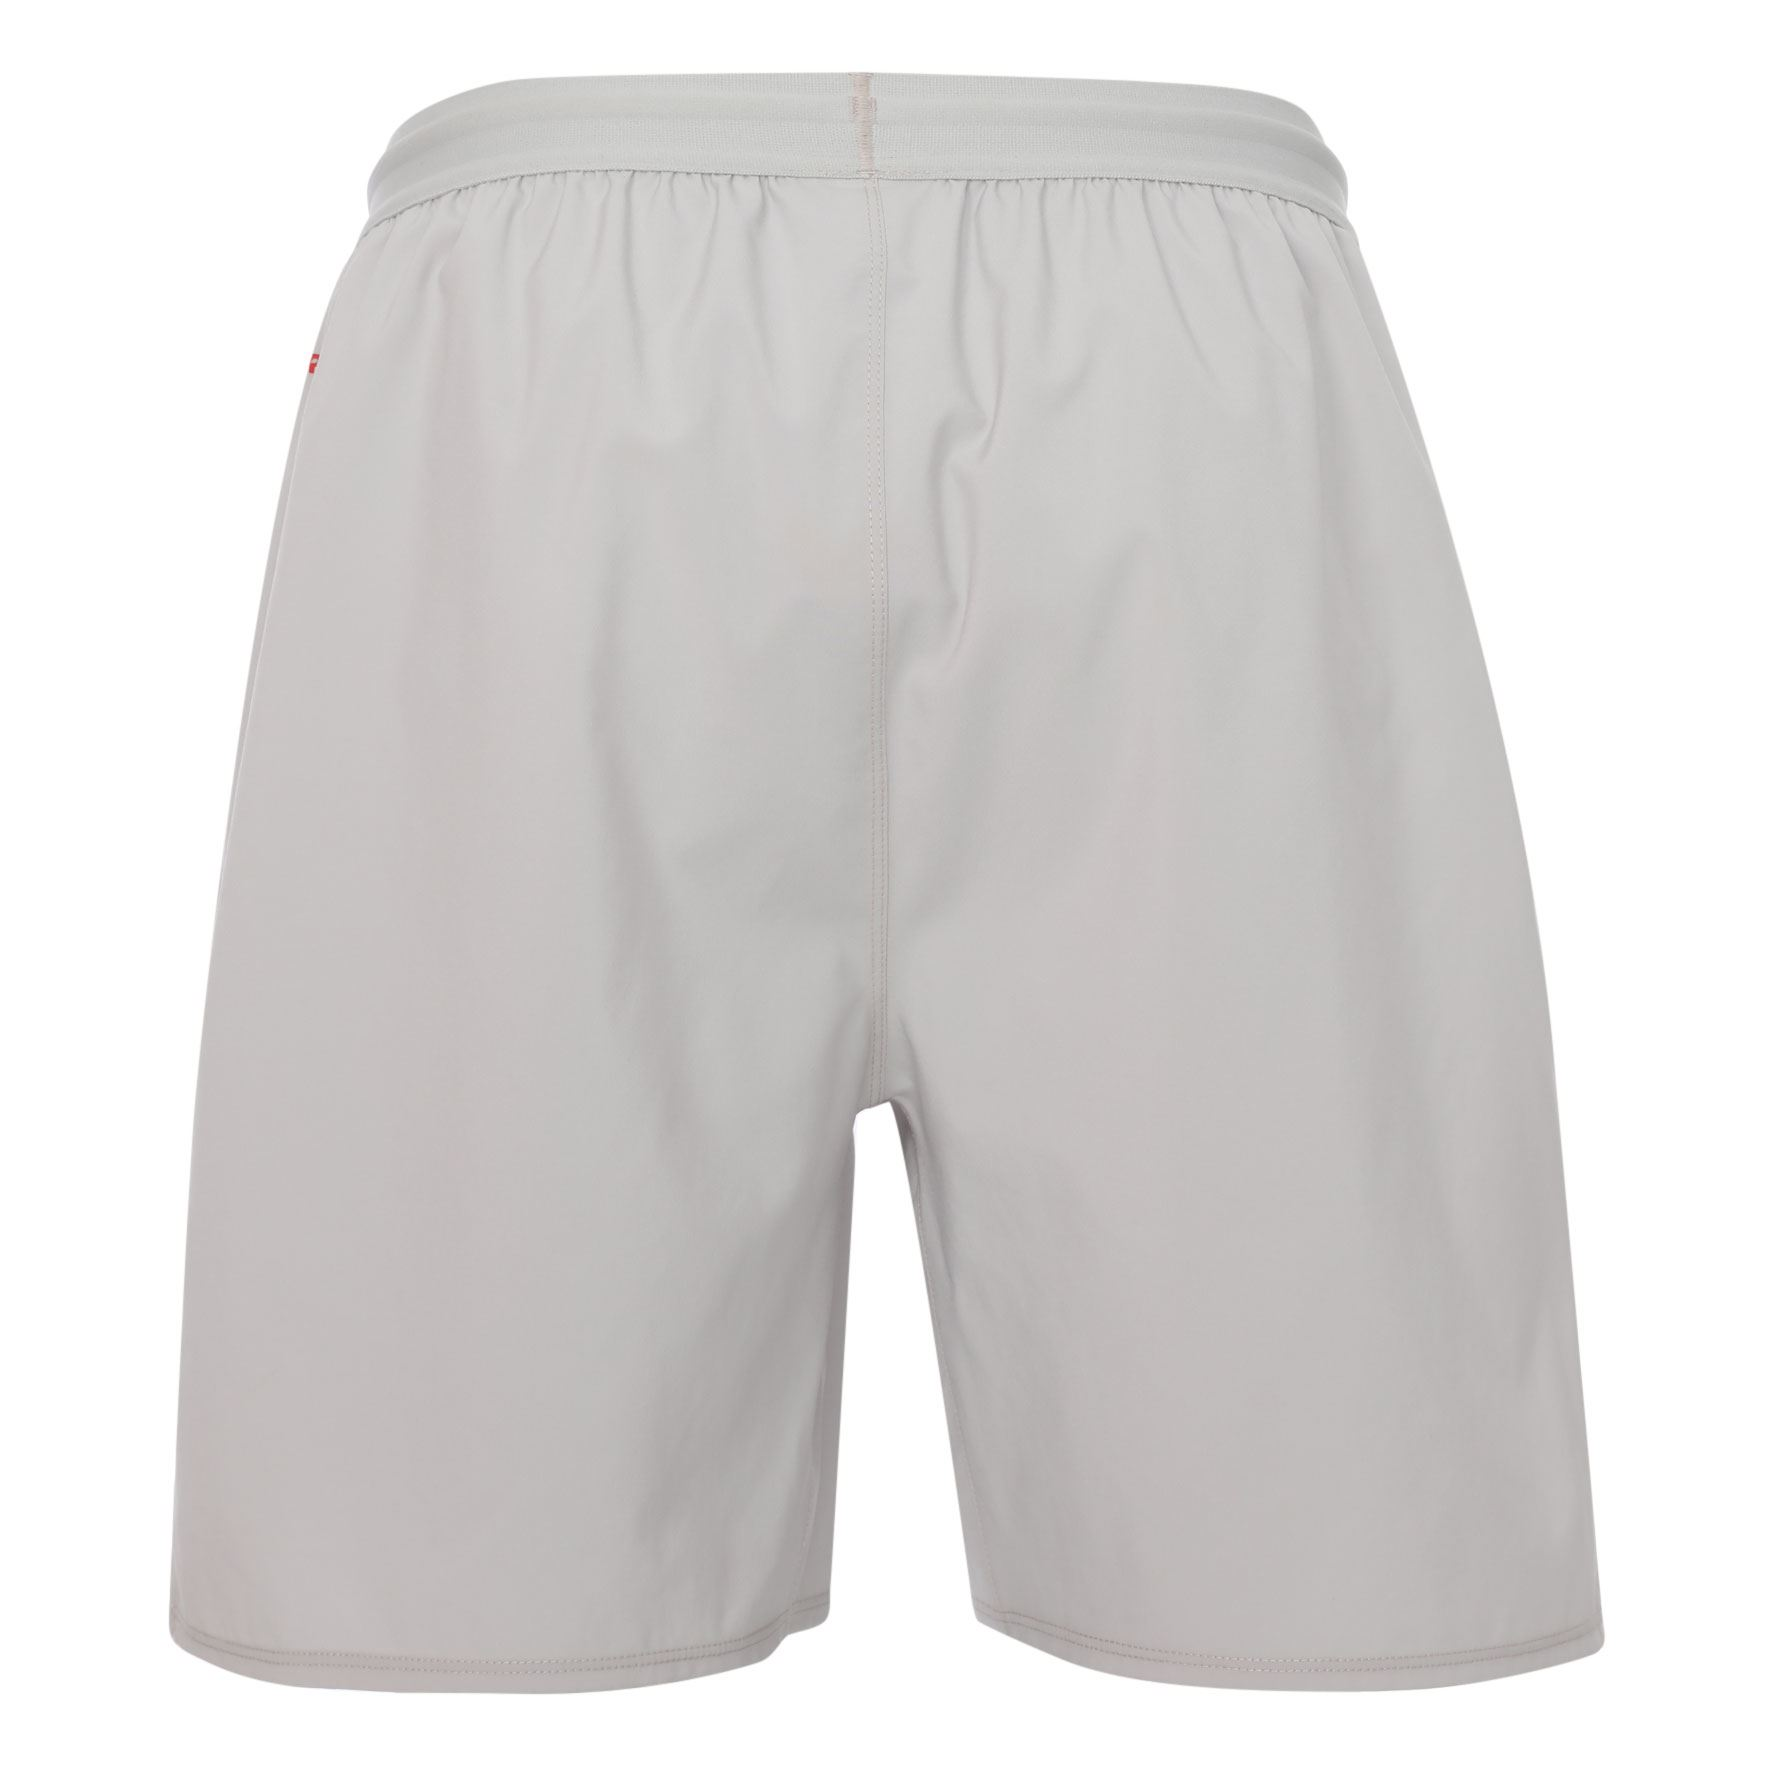 888dda426db Liverpool FC Grey Mens Football Third Shorts 18 19 LFC Official. AU  52.50.  Click on the image below to get zoomed view